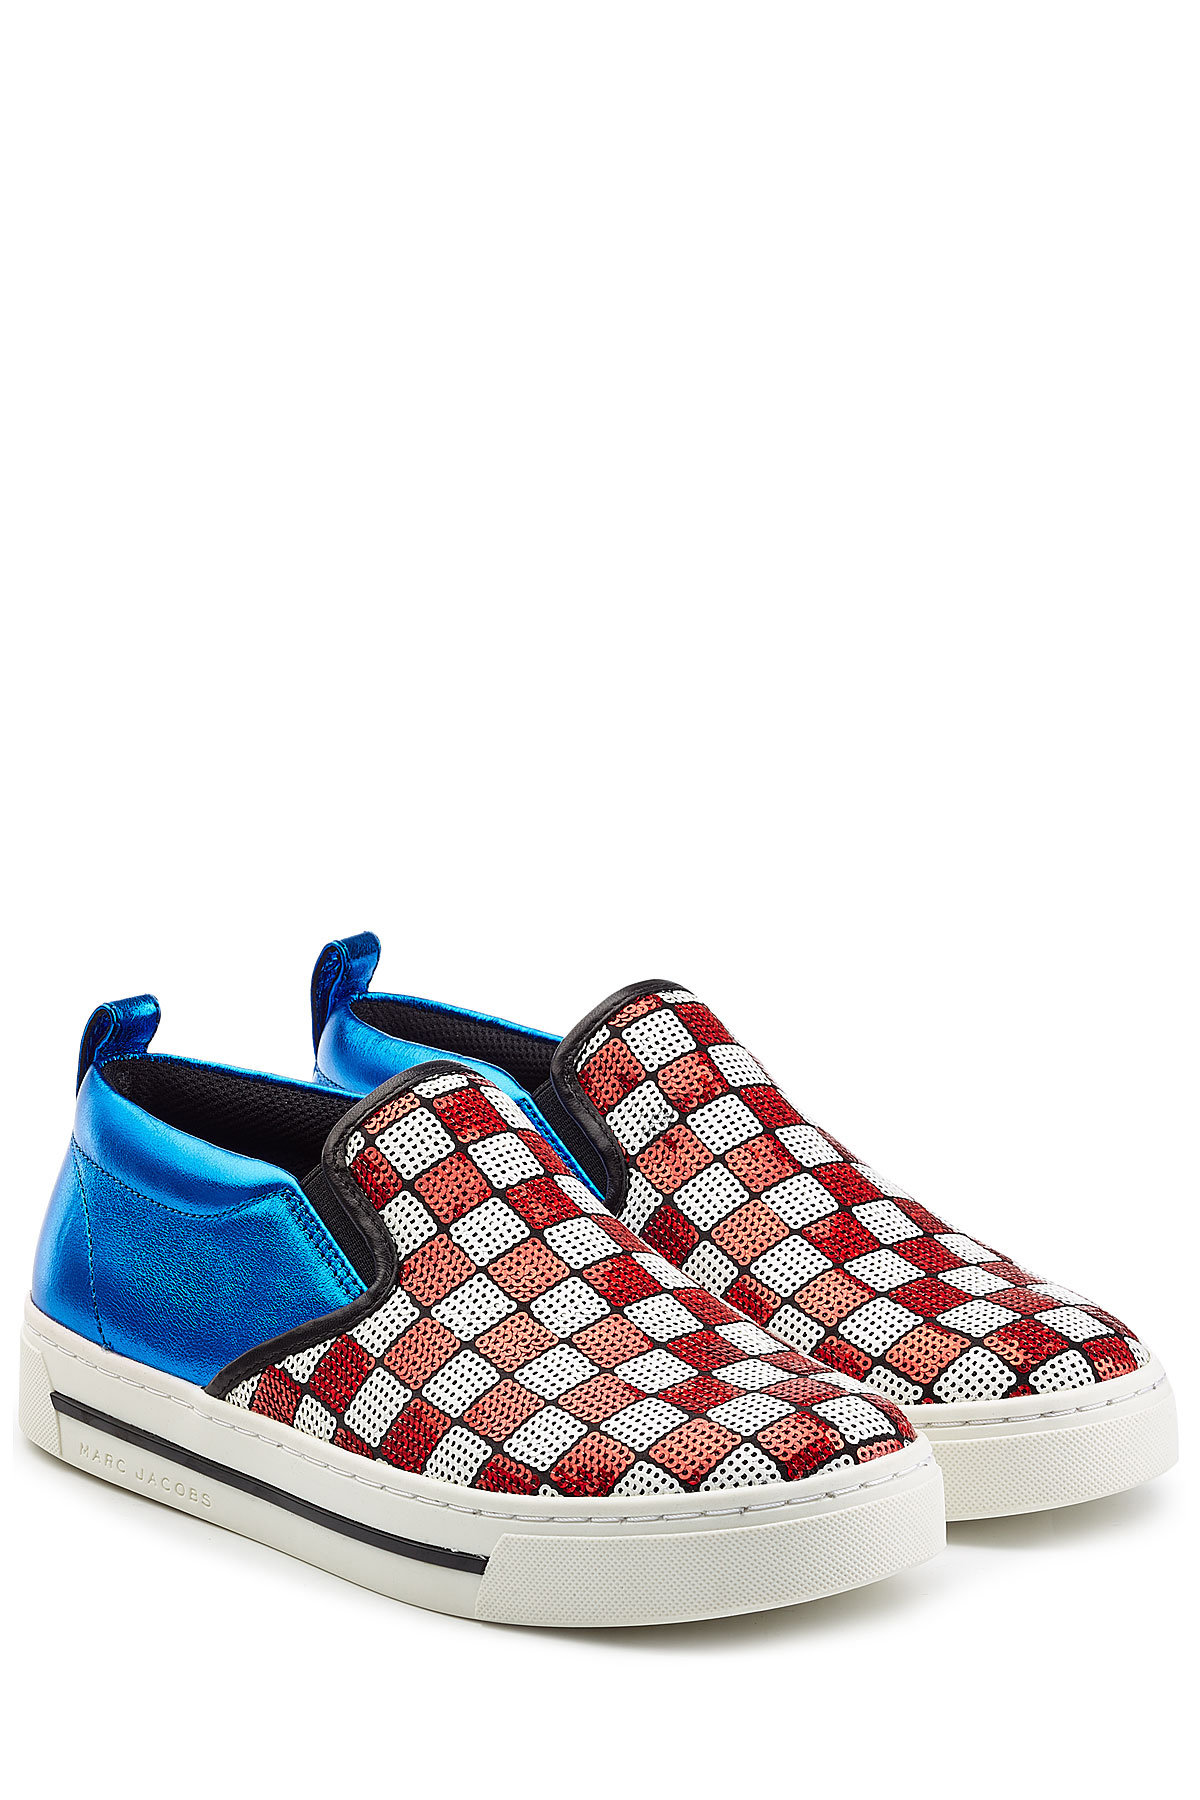 Marc Jacobs Leather Slip-On Sneakers with Sequins Gr. IT 38 lcwWcqyY